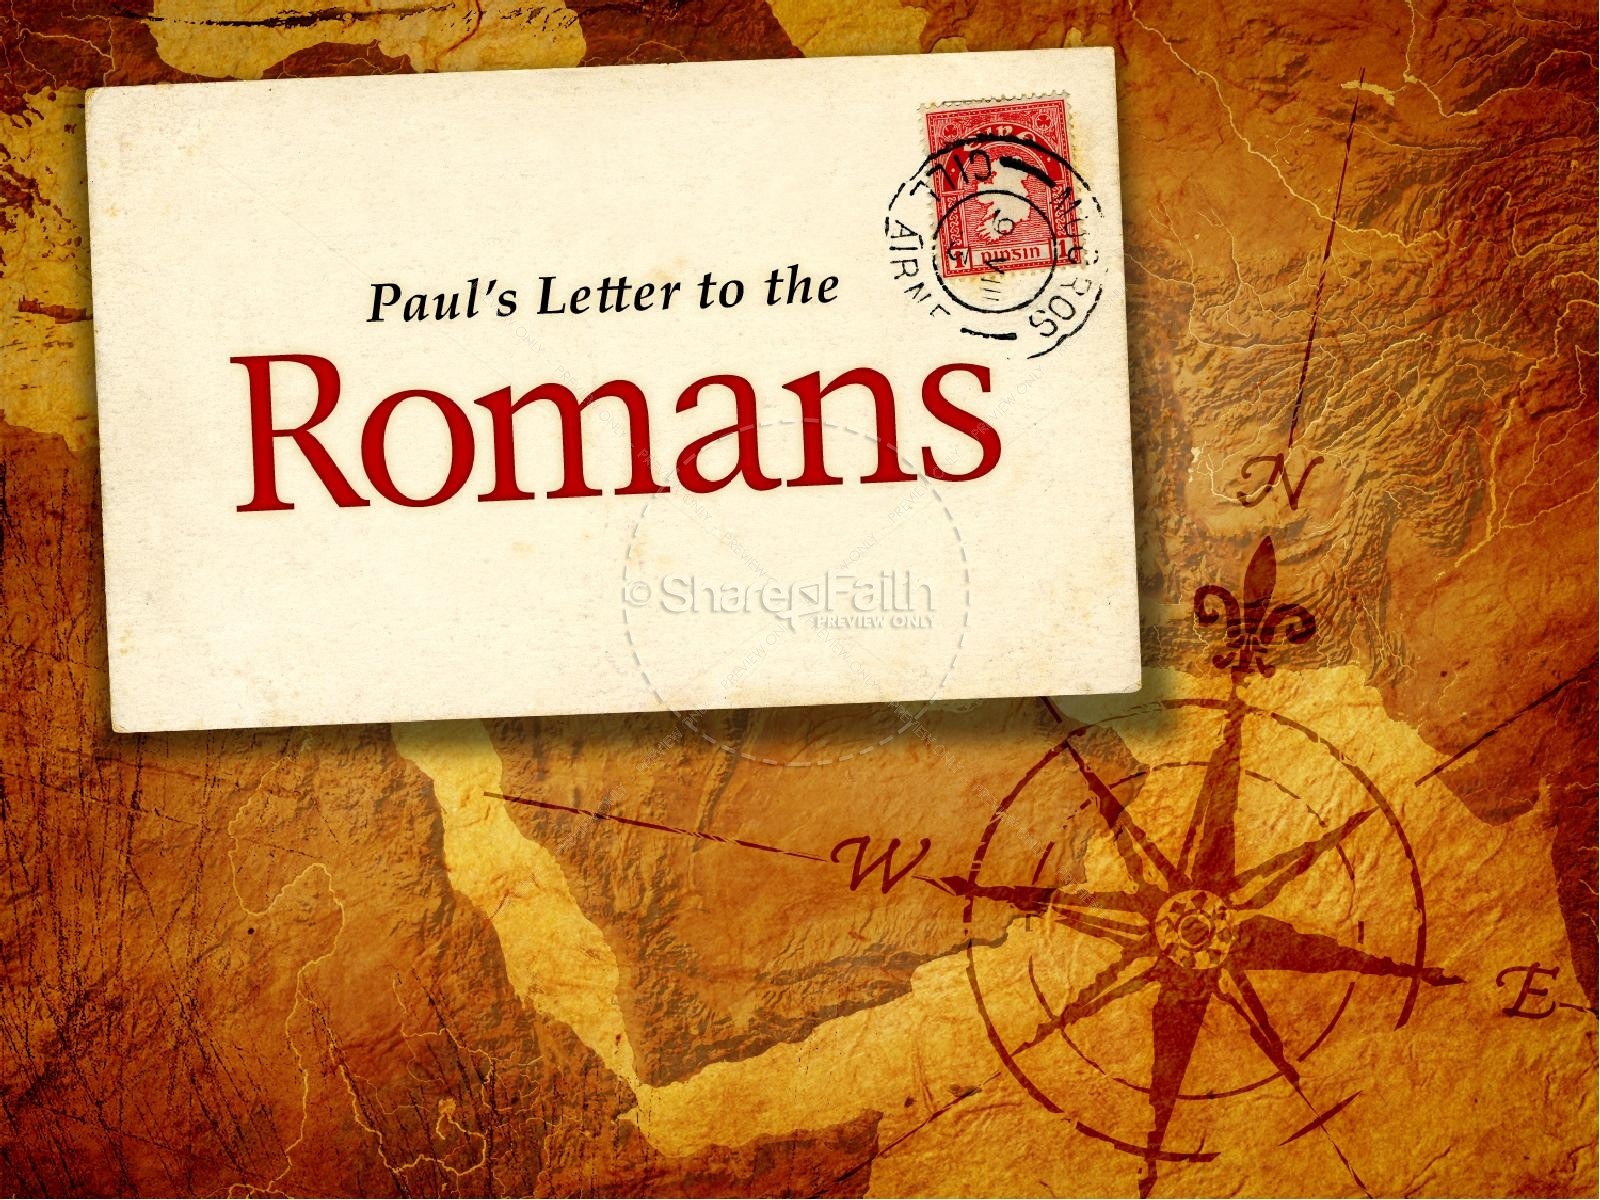 Letter to the romans powerpoint template new testament books letter to the romans powerpoint template toneelgroepblik Image collections